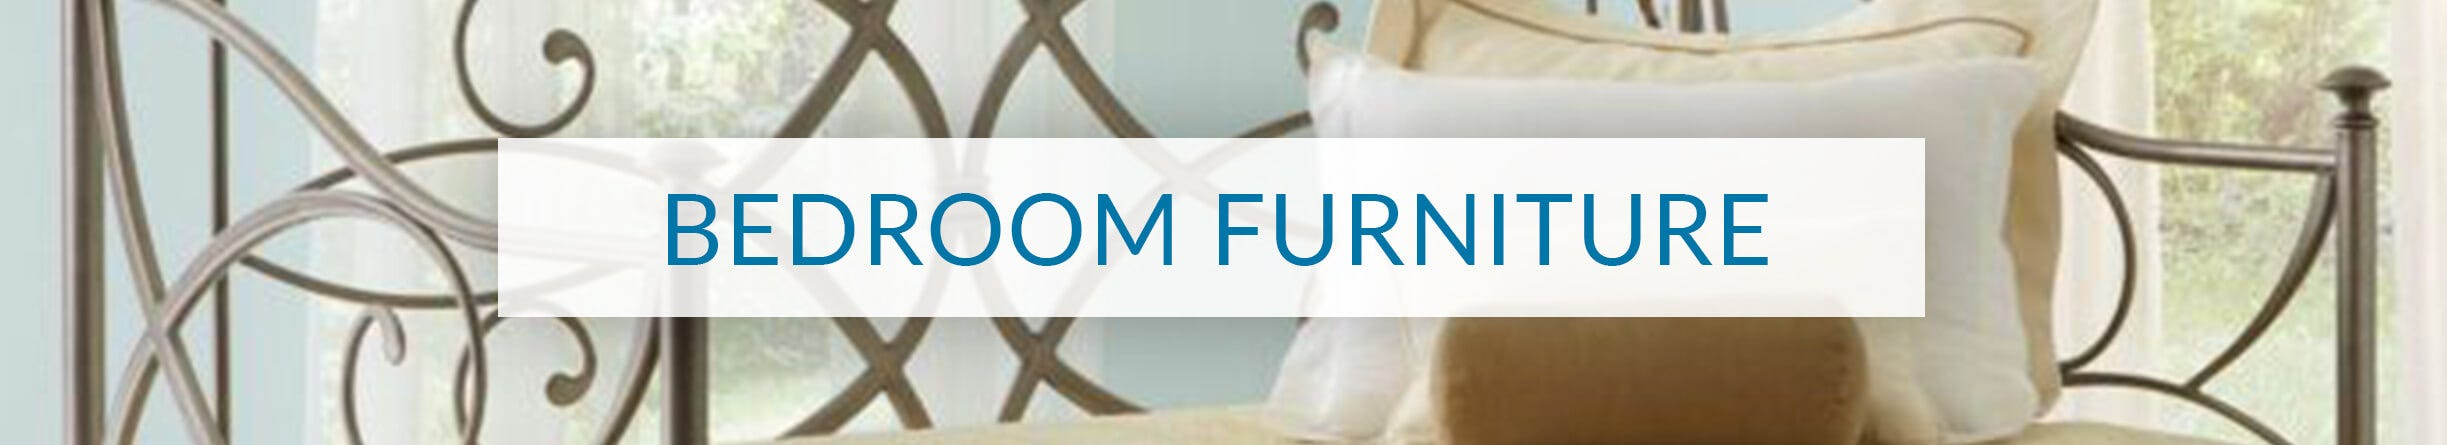 Shop Bedroom Furniture at US-Mattress.com